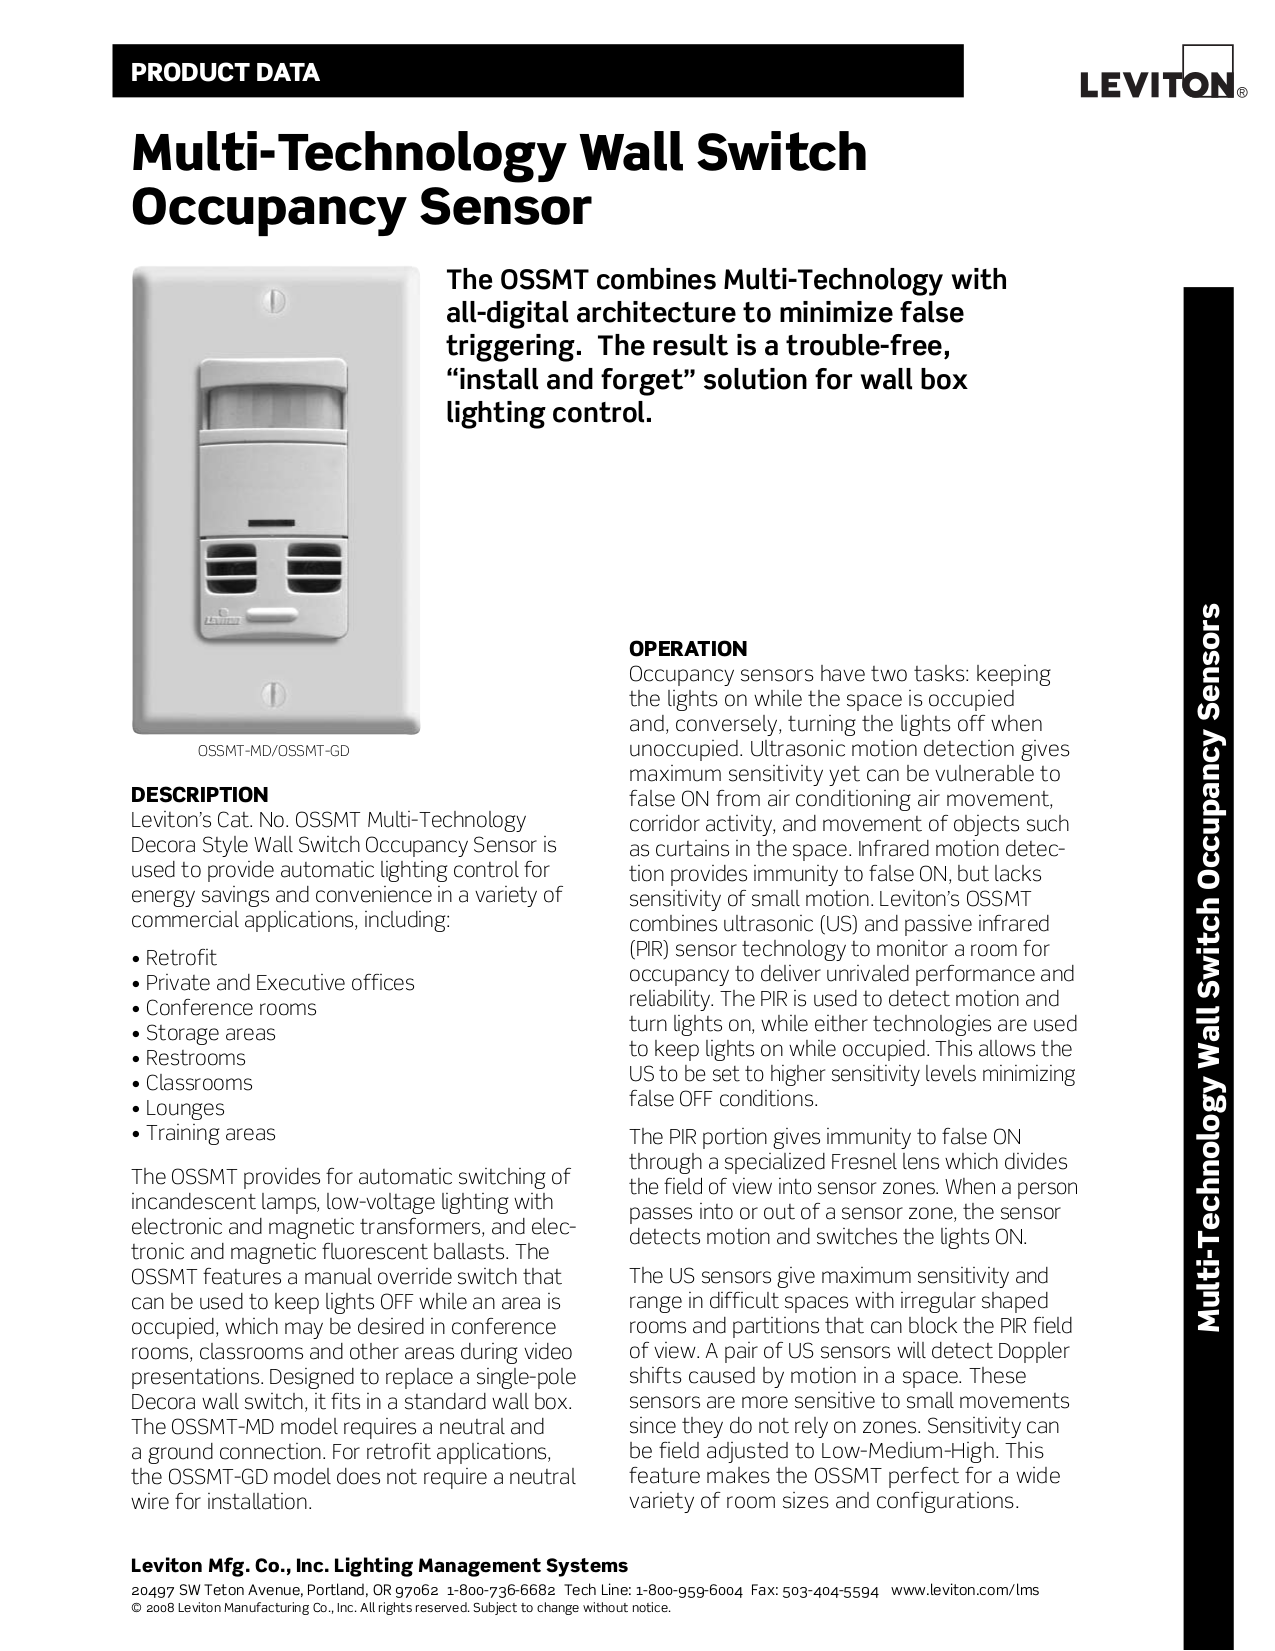 Download free pdf for Leviton OSSMD-MD Occupancy Sensor Other manual